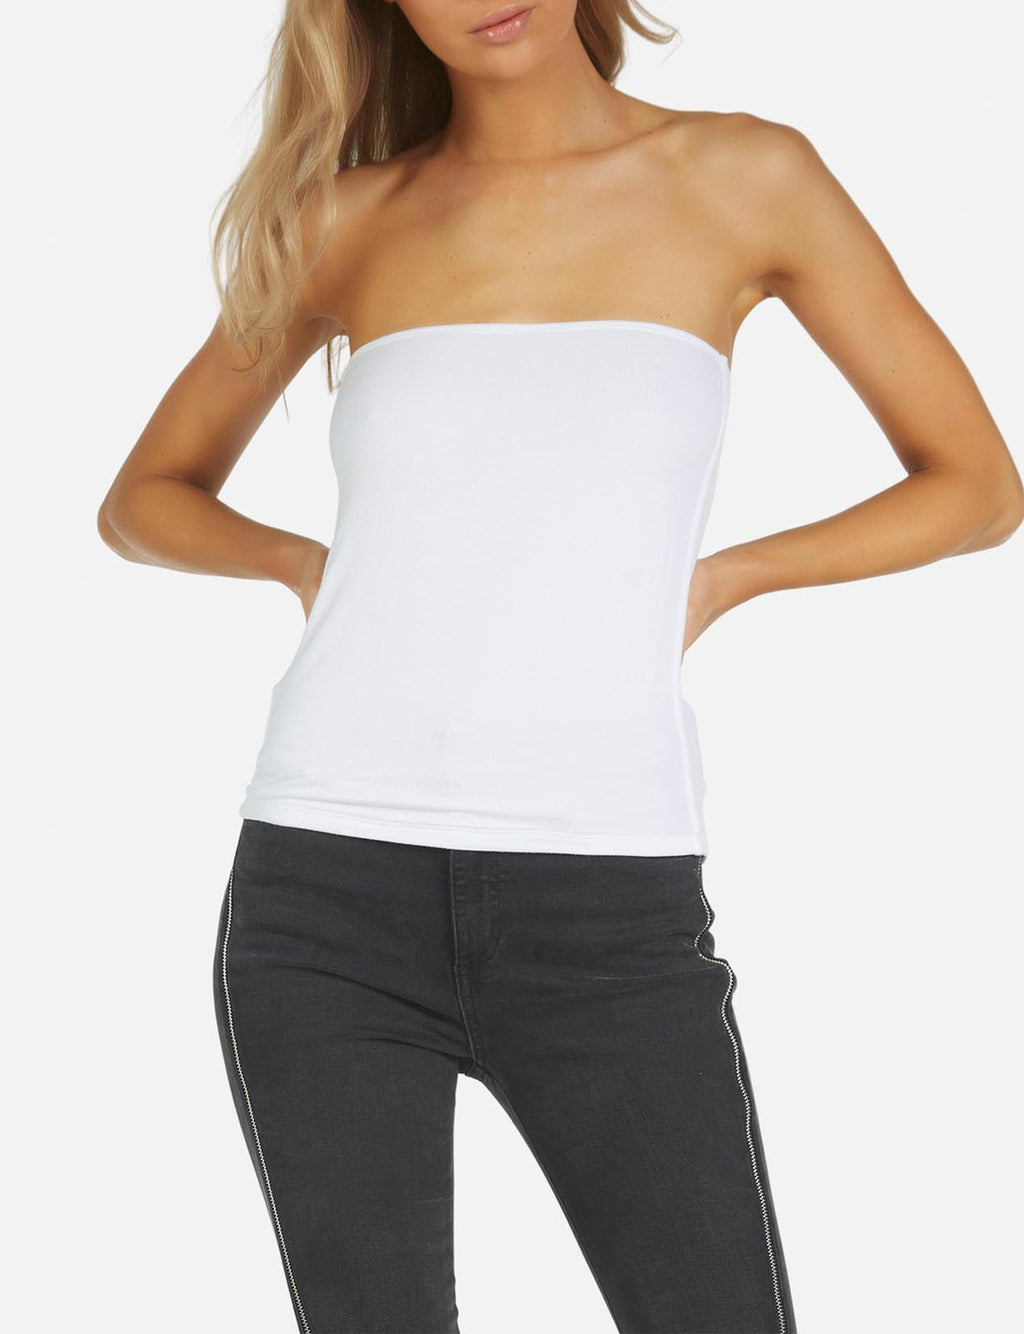 Axford Tube Top in White